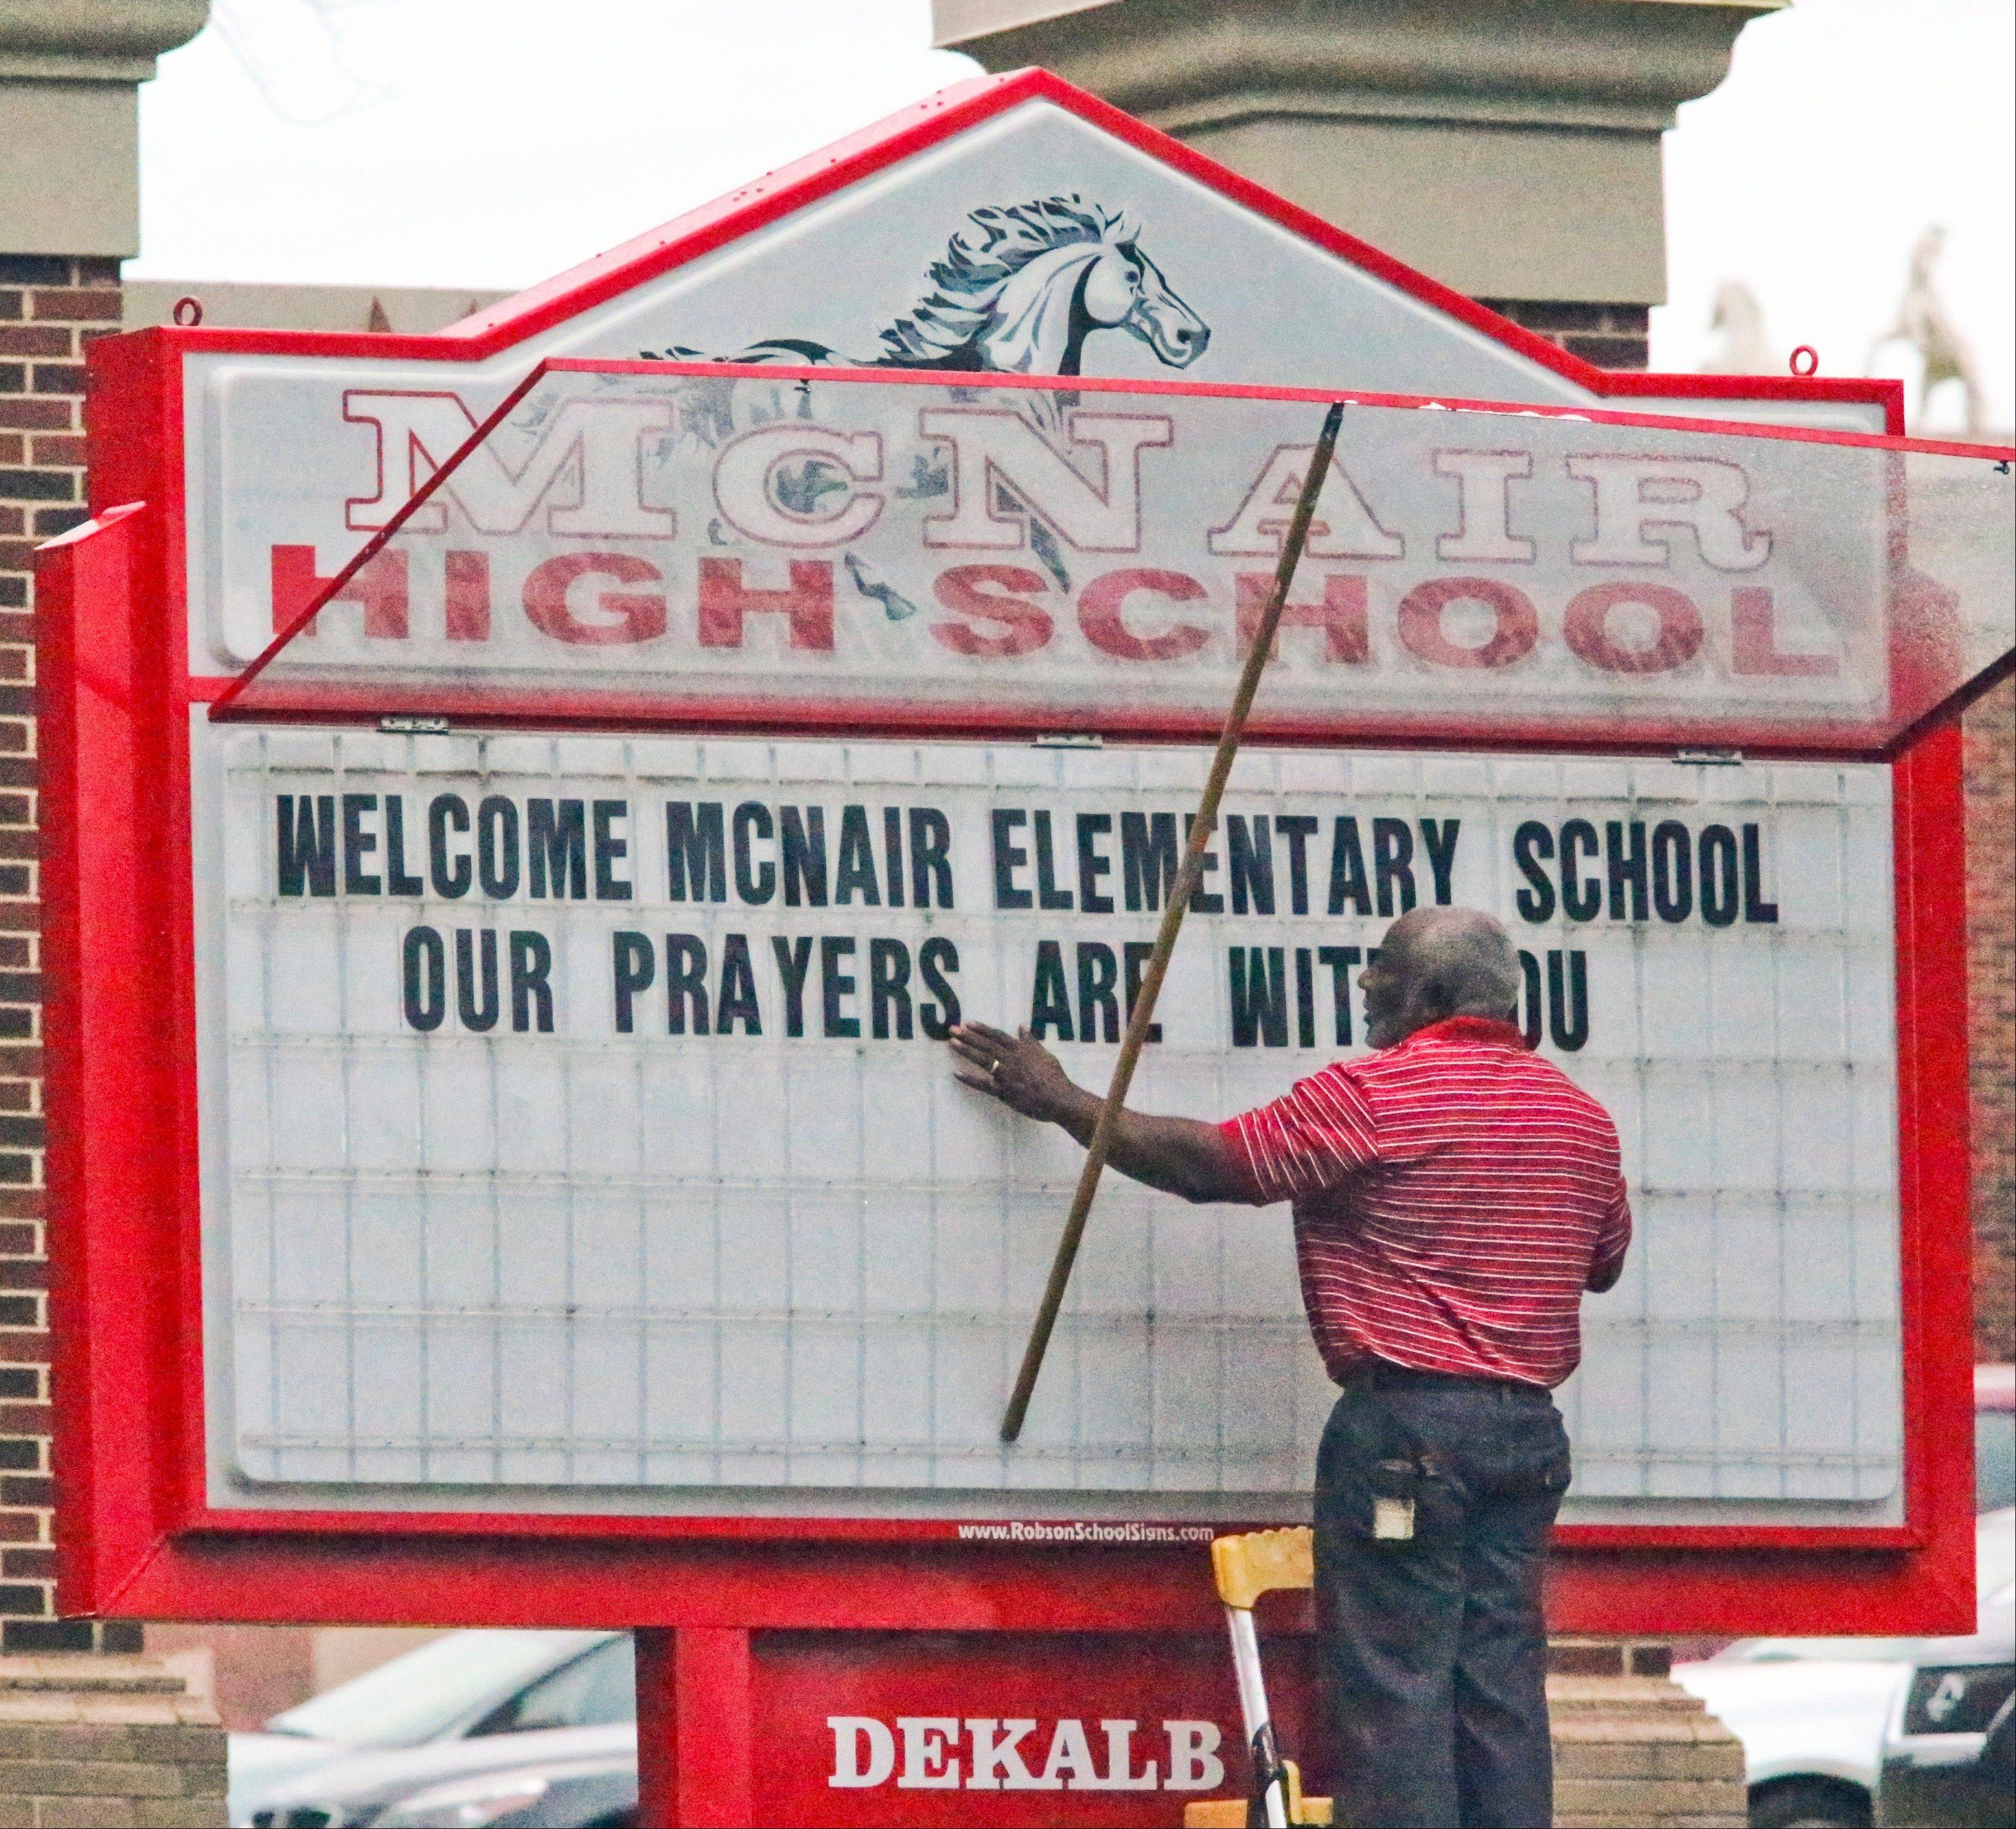 Ronald E. McNair Discovery Learning Academy held classes at McNair High School on Wednesday after a gunman on Tuesday held one or two staff members captive and fired into the floor of the school office.